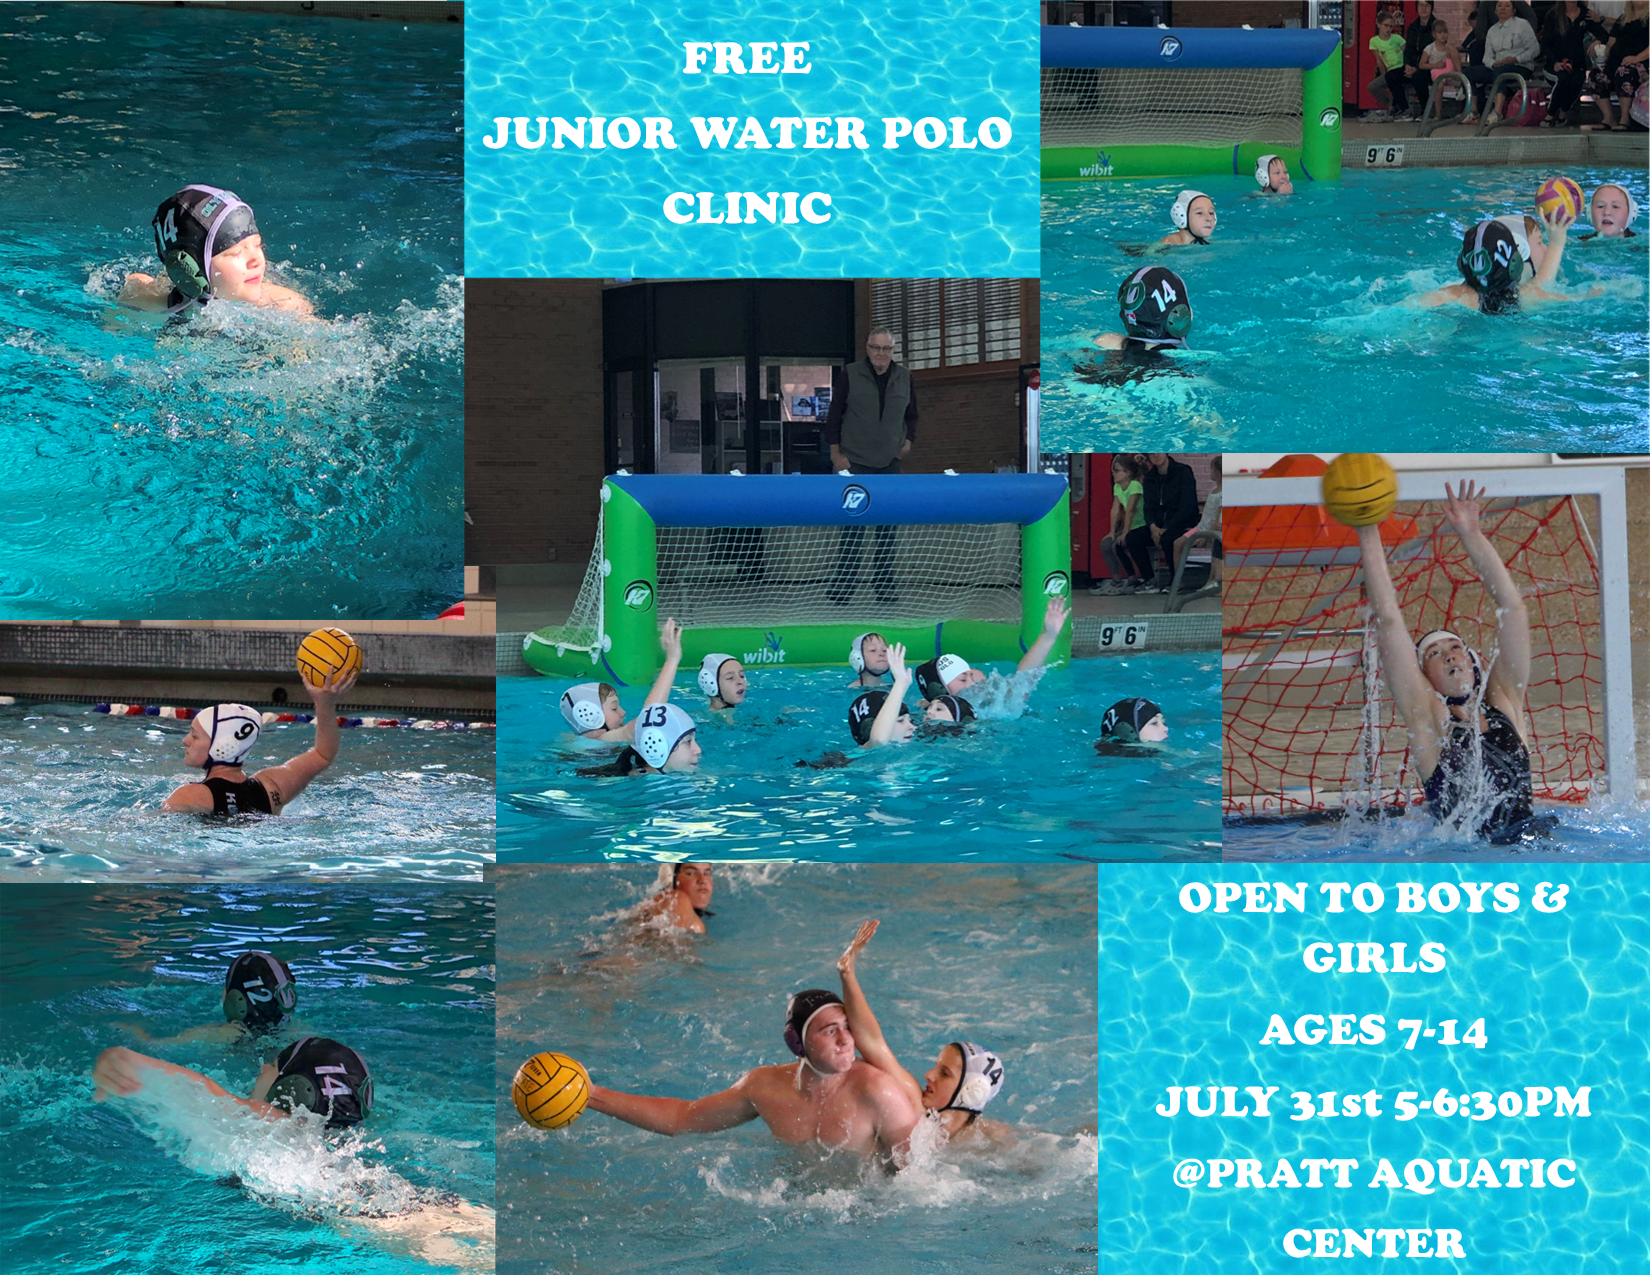 Free Junior Water Polo Clinic